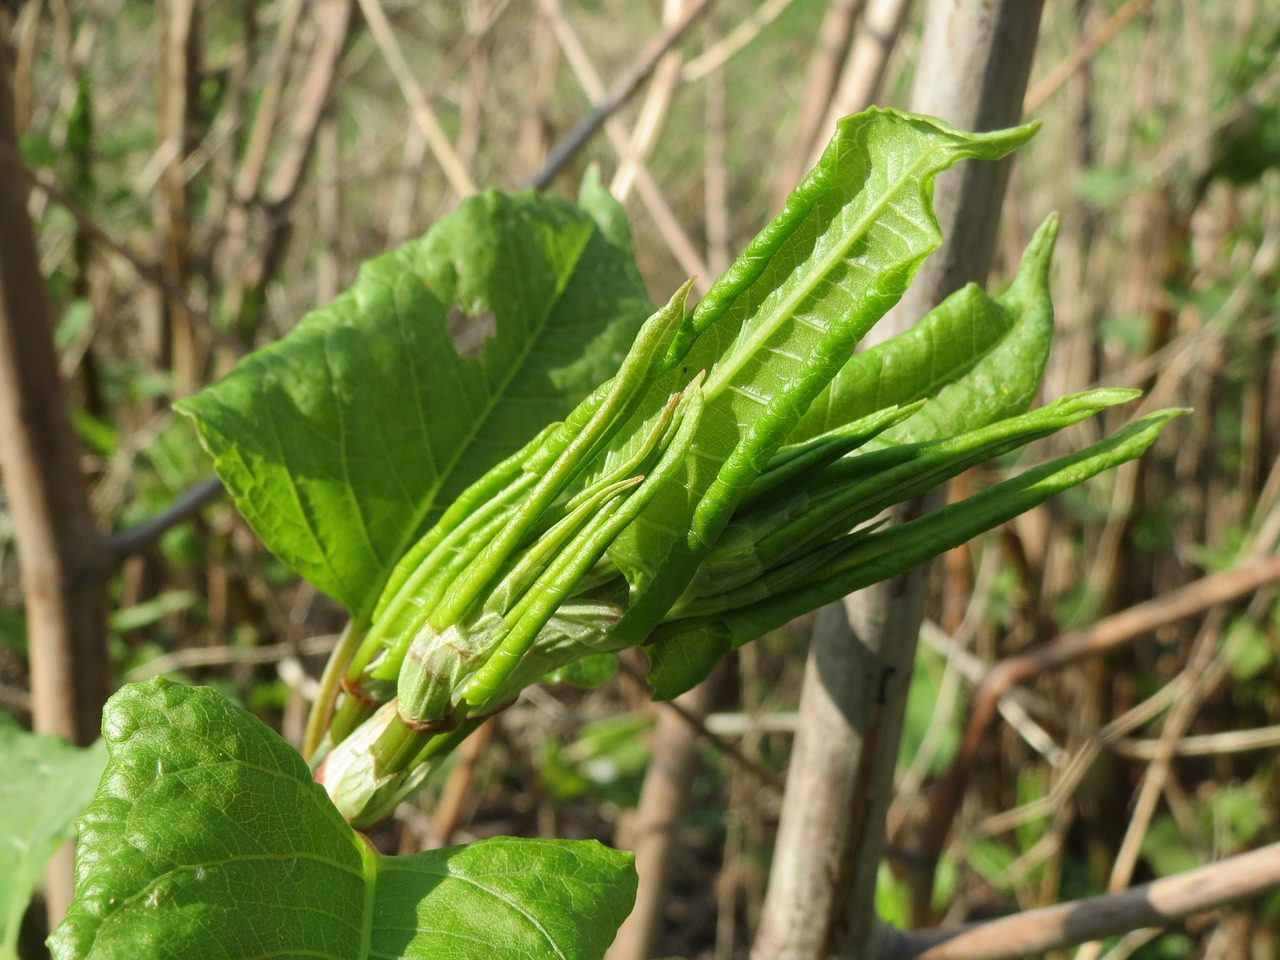 Young Japanese knotweed leaves